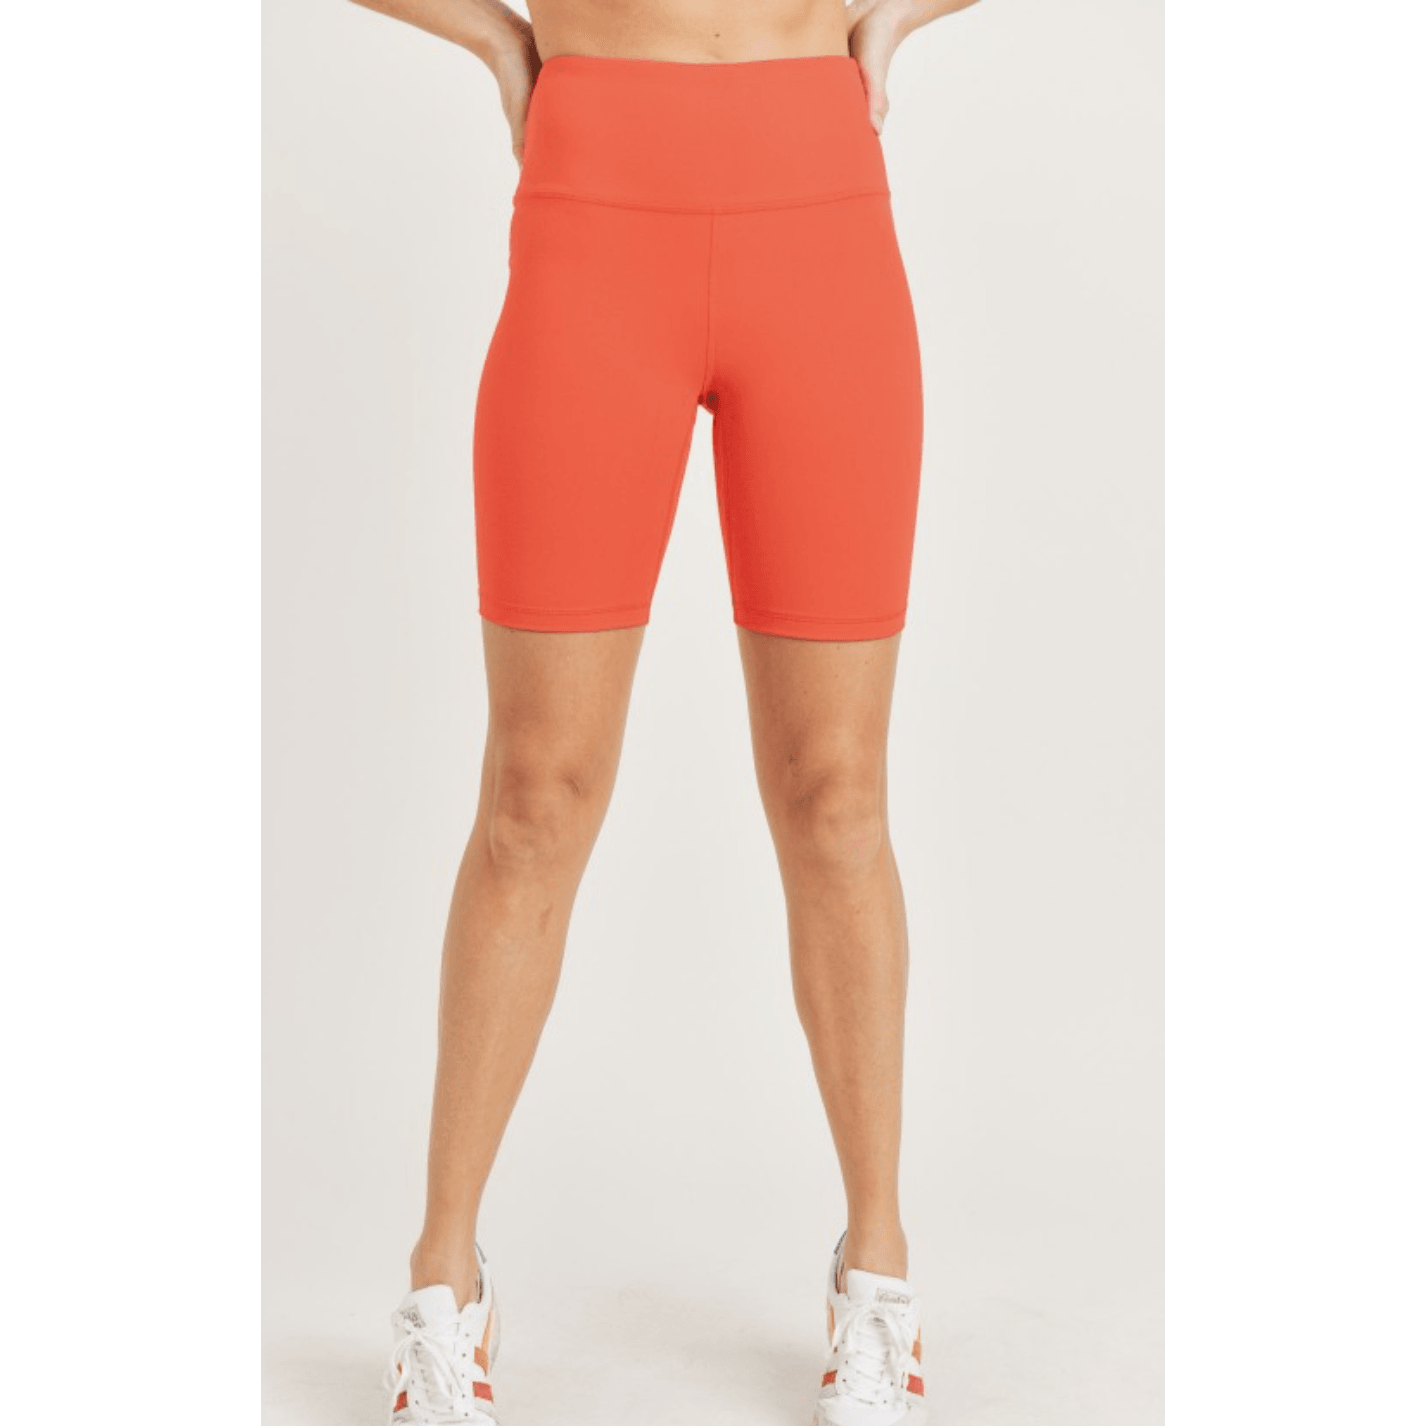 Neon Orange Biker Shorts - Southern Roots Clothing Company